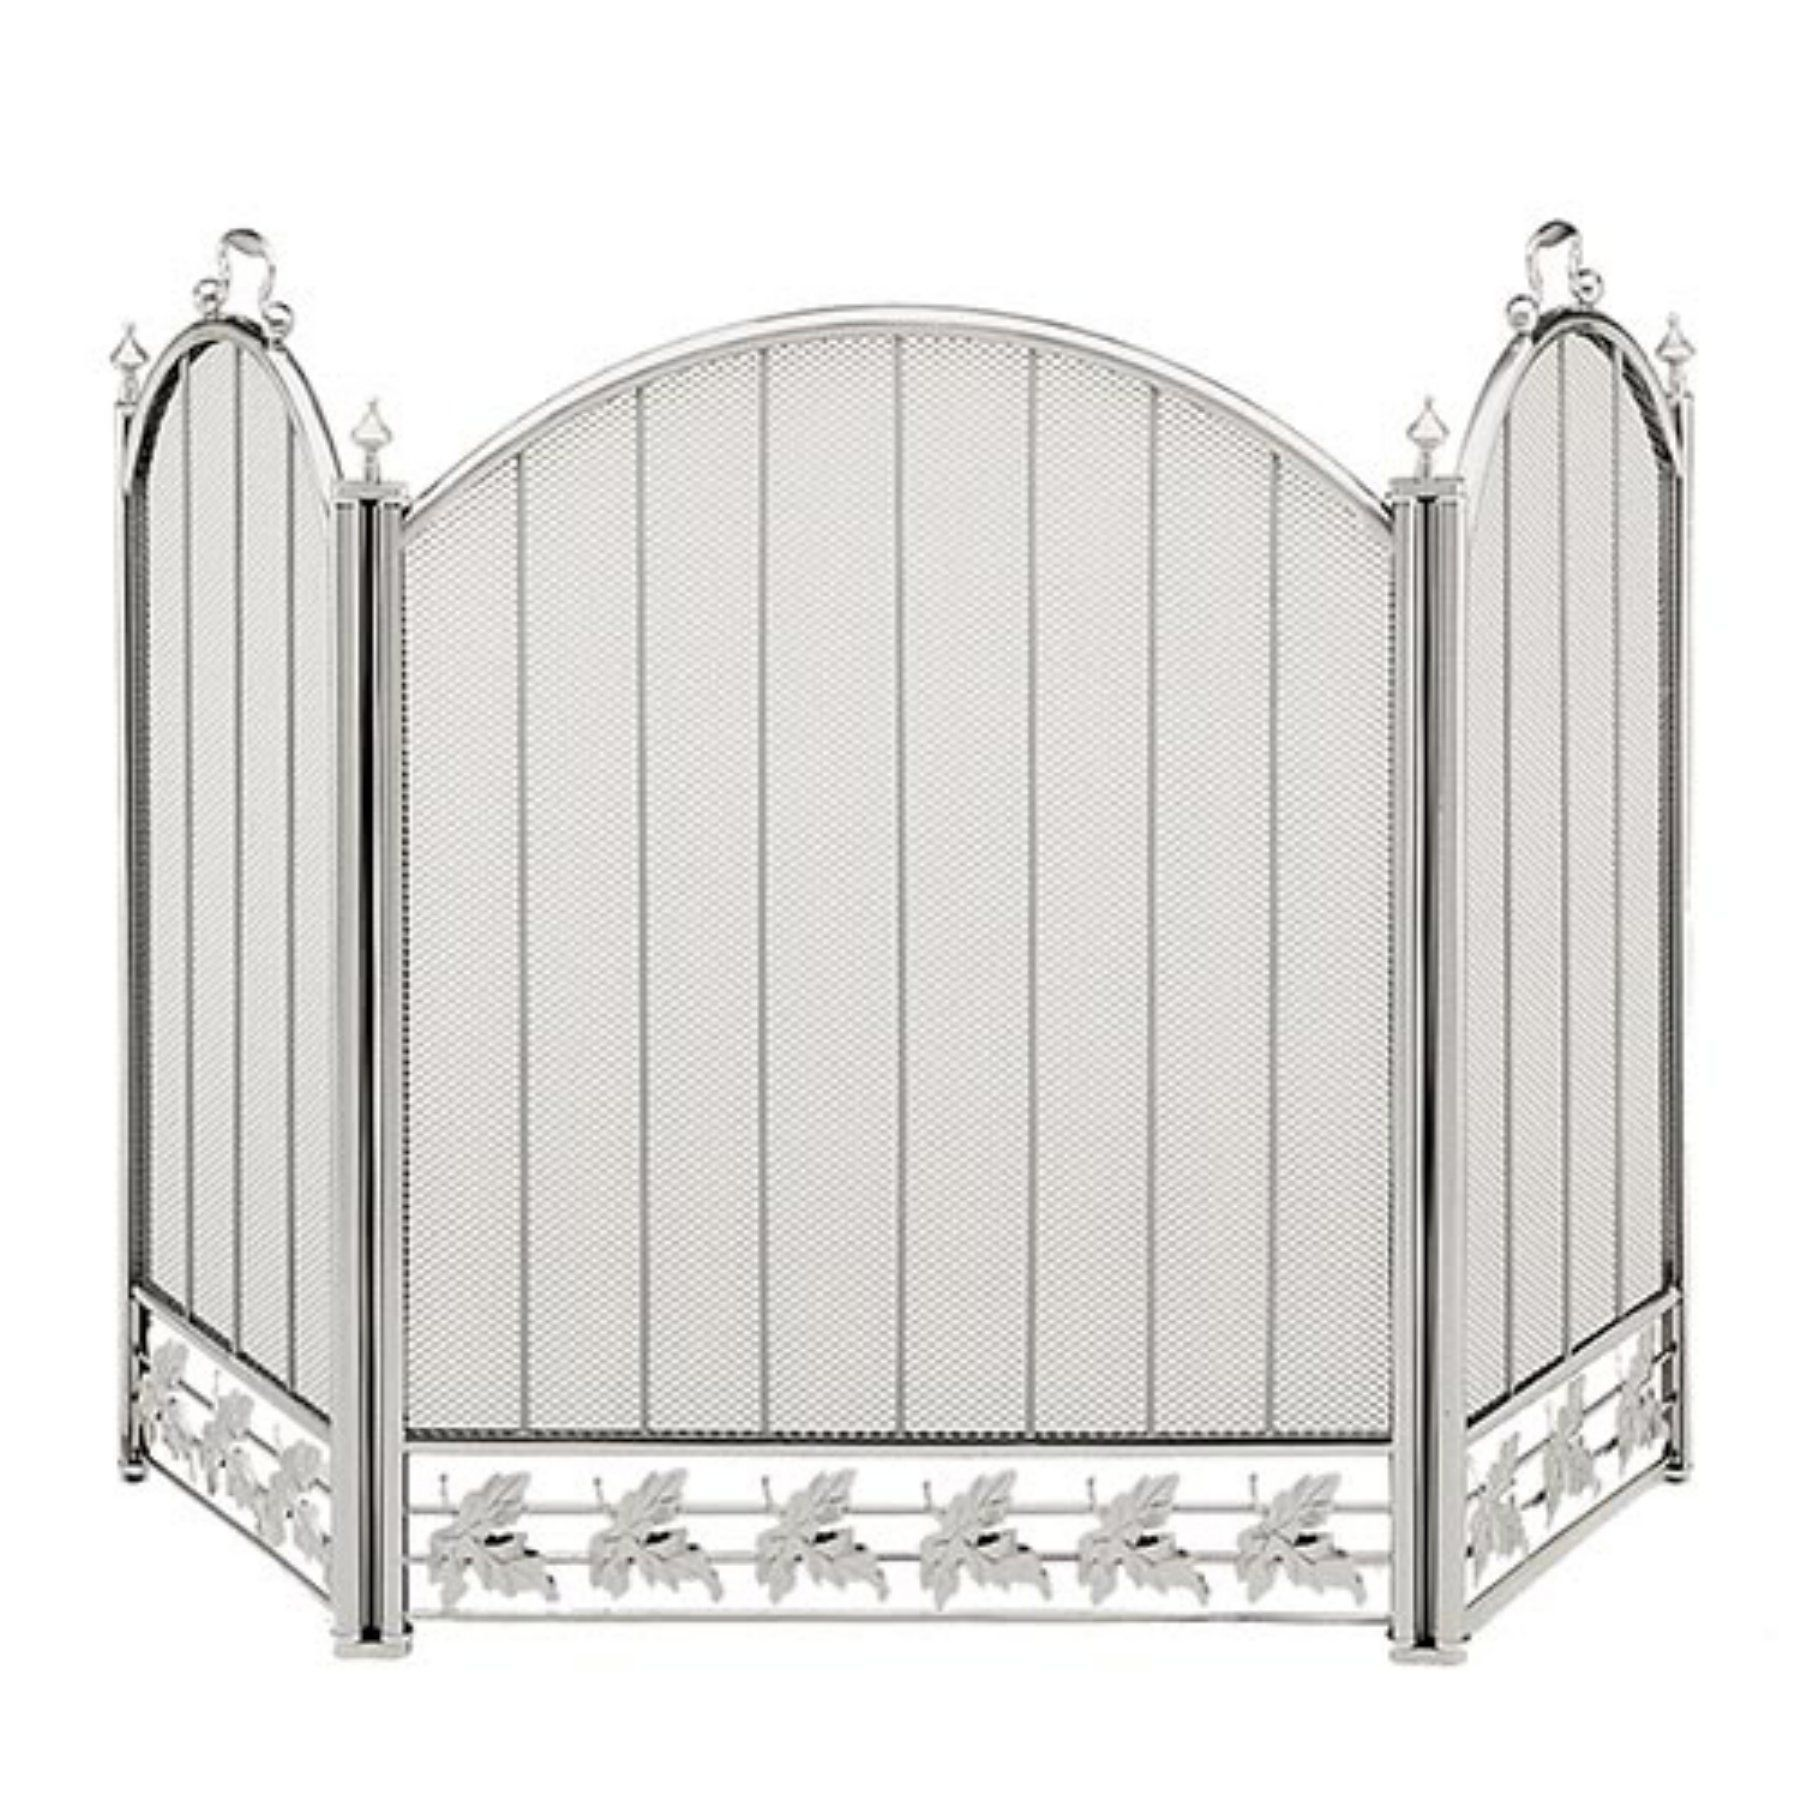 fold products front and fireplace structure home decorative koehler white fencing screens furniture decor picture tri metal screen collections black iron classic fake barnwood my cover frames